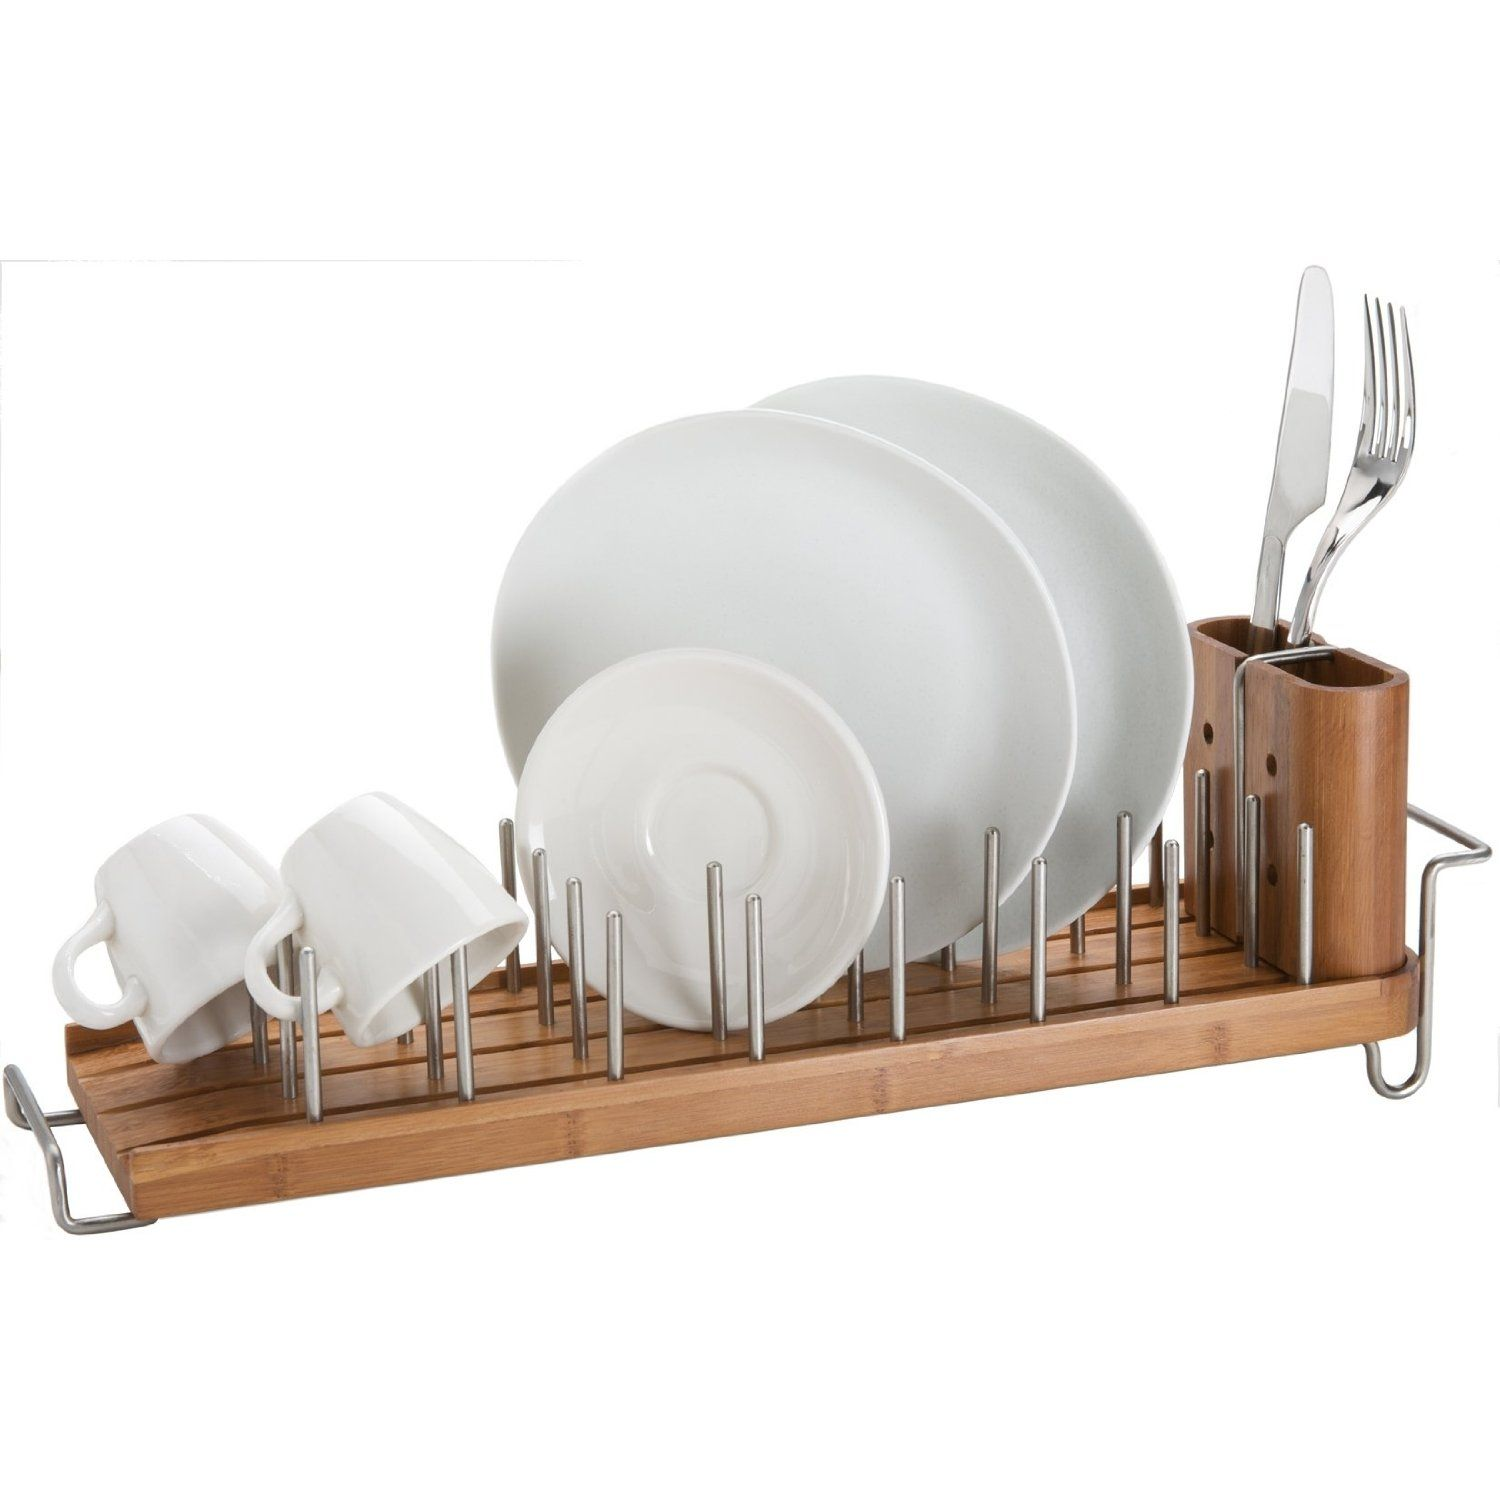 The Dish Drainer An Overlooked Kitchen S Essential